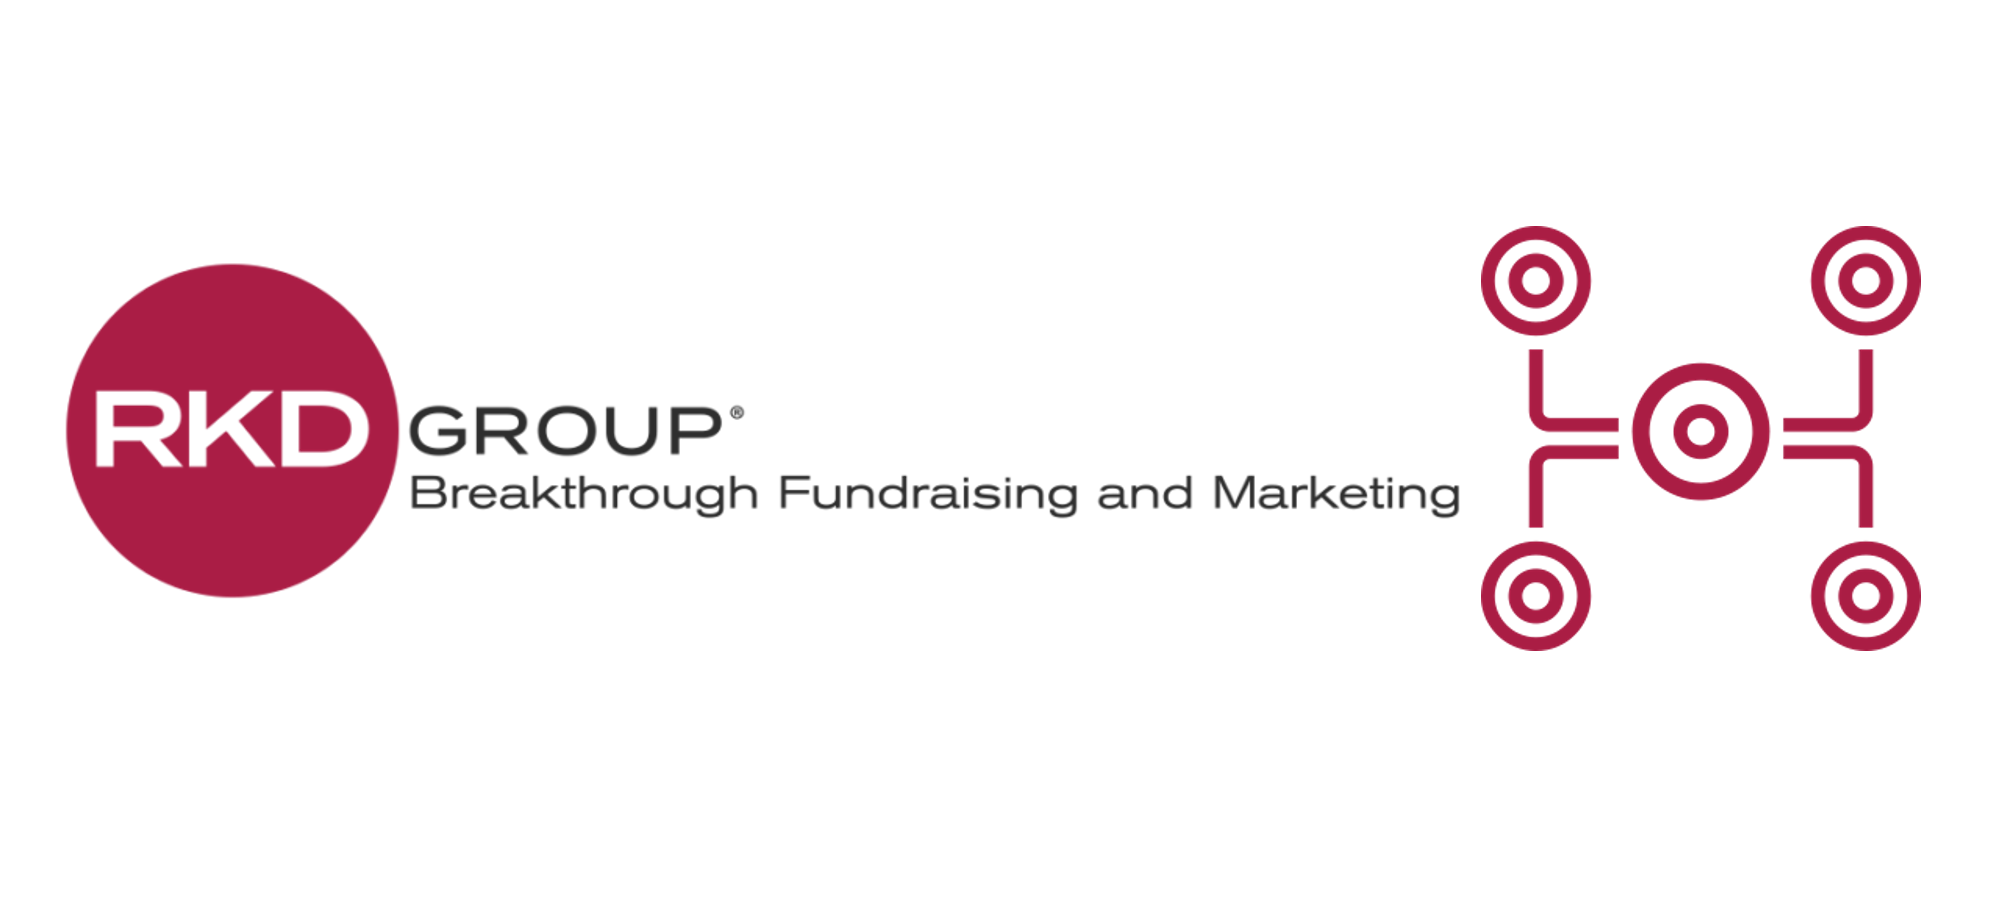 3radical and RKD Group Partner to Inspire Donor Advocacy